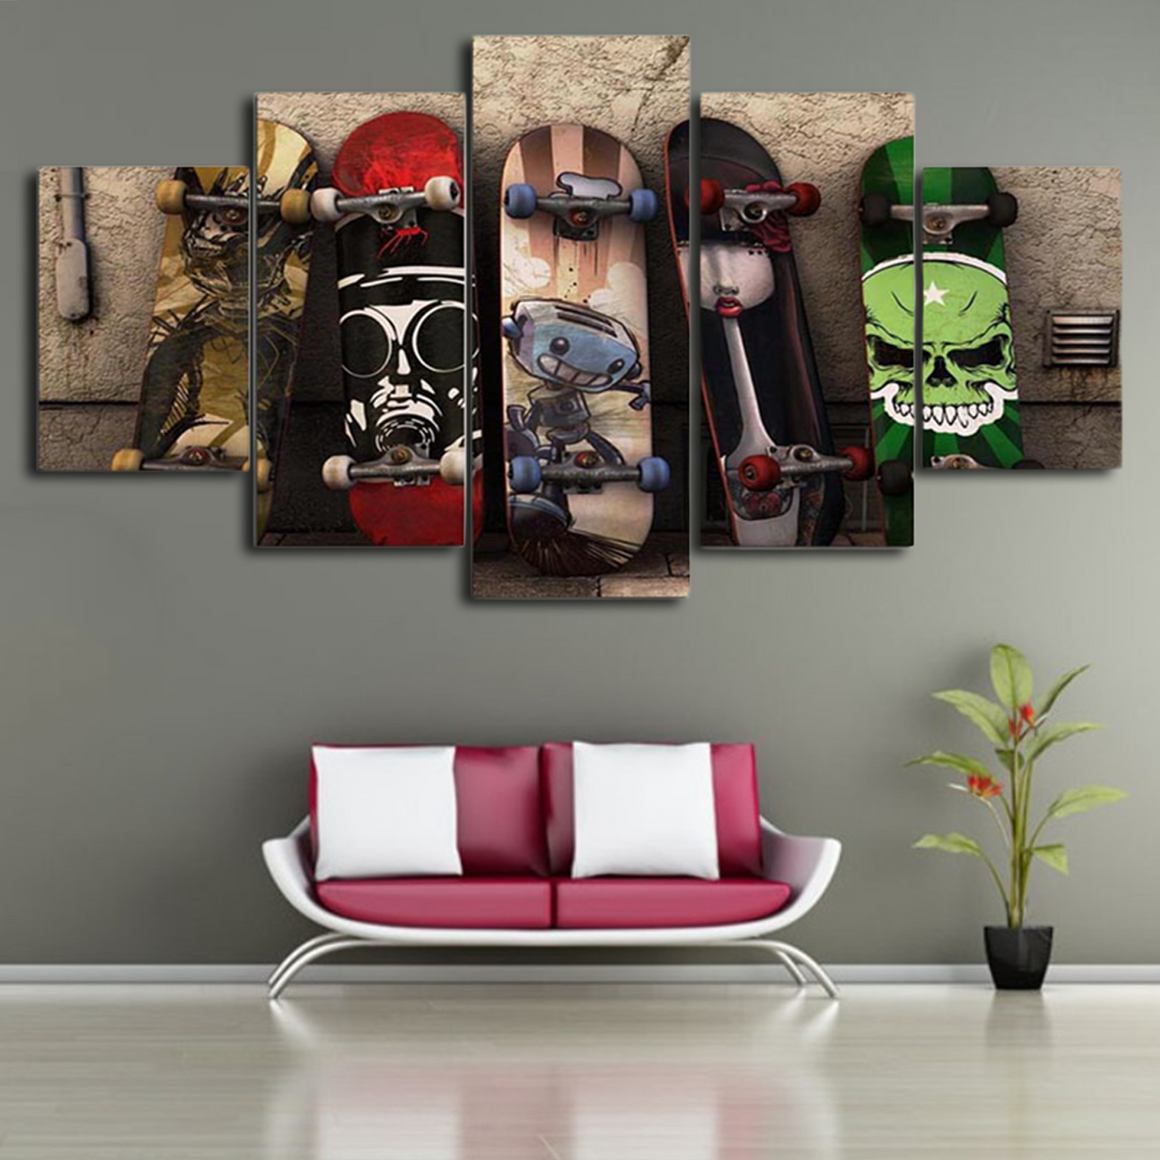 Painted Skateboard 5 Panel canvas